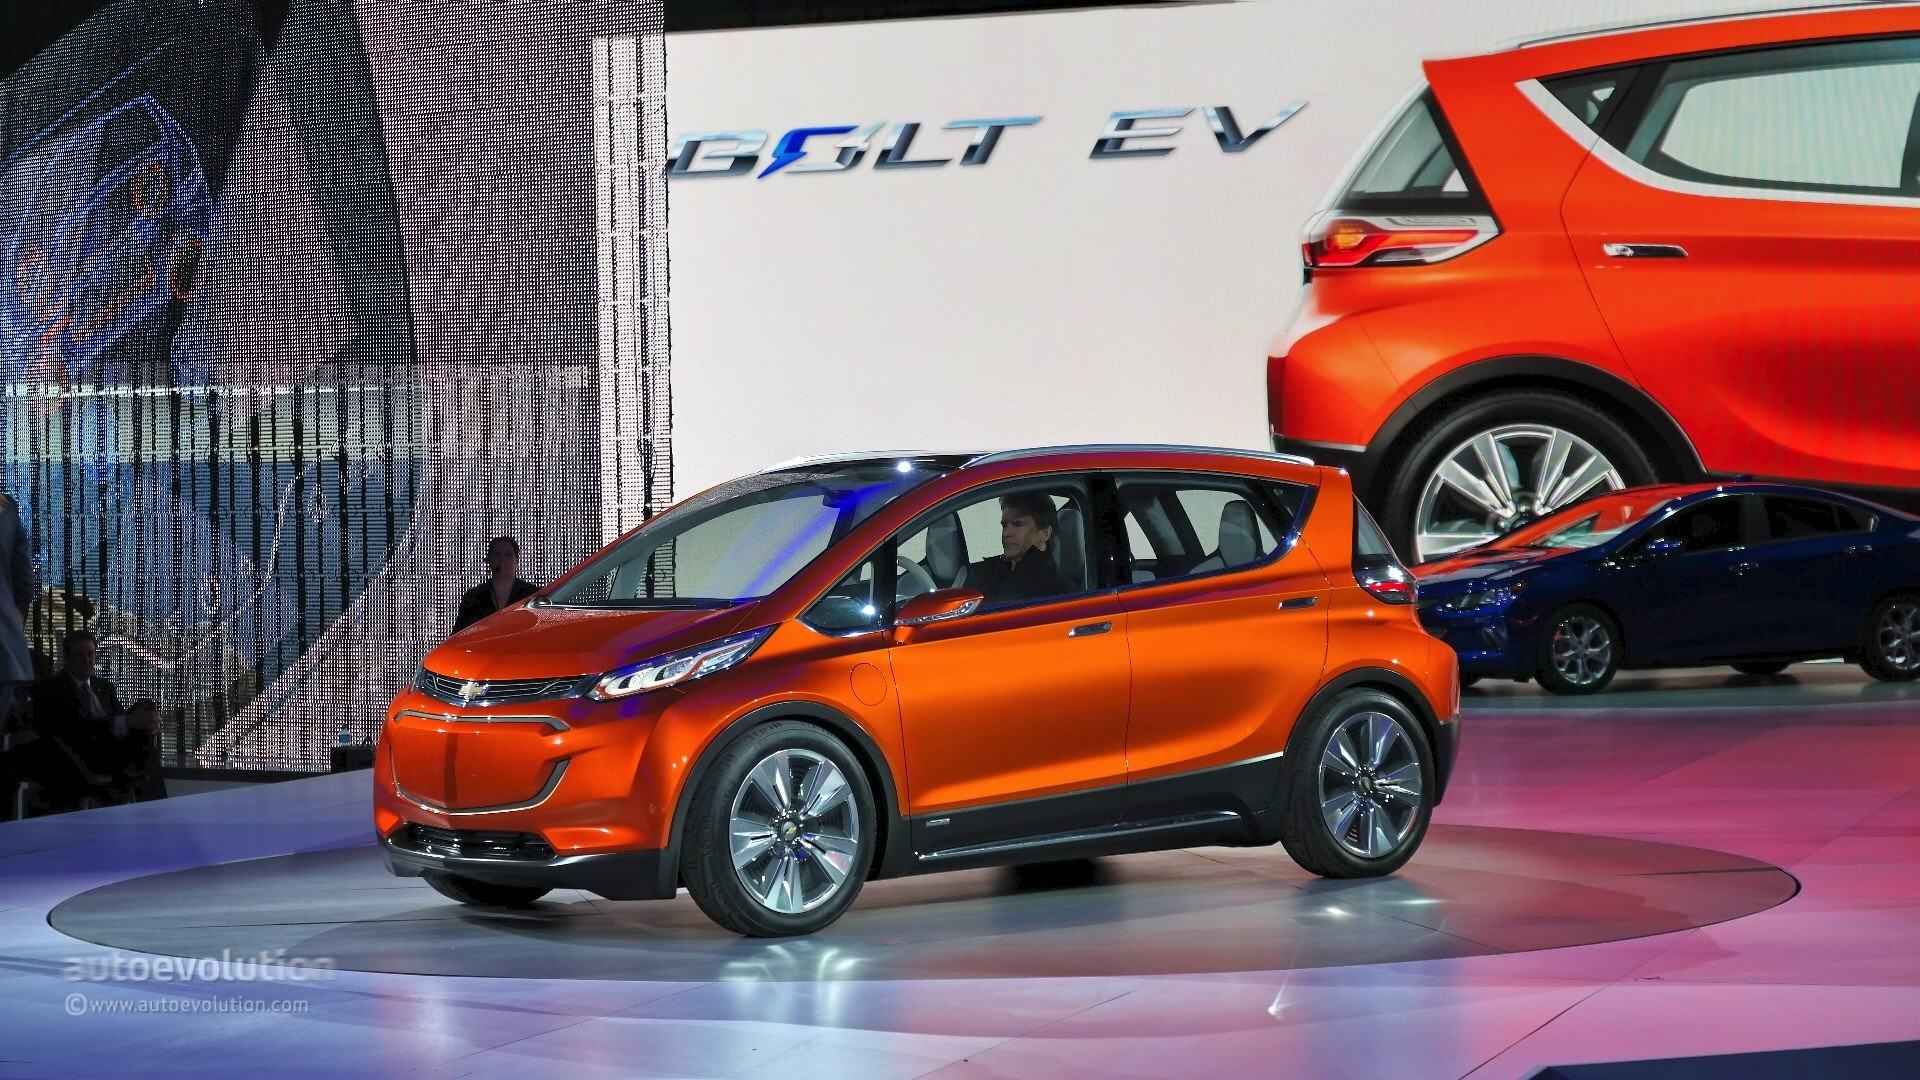 2017 Chevrolet Bolt Confirmed to Retain the Concept ...